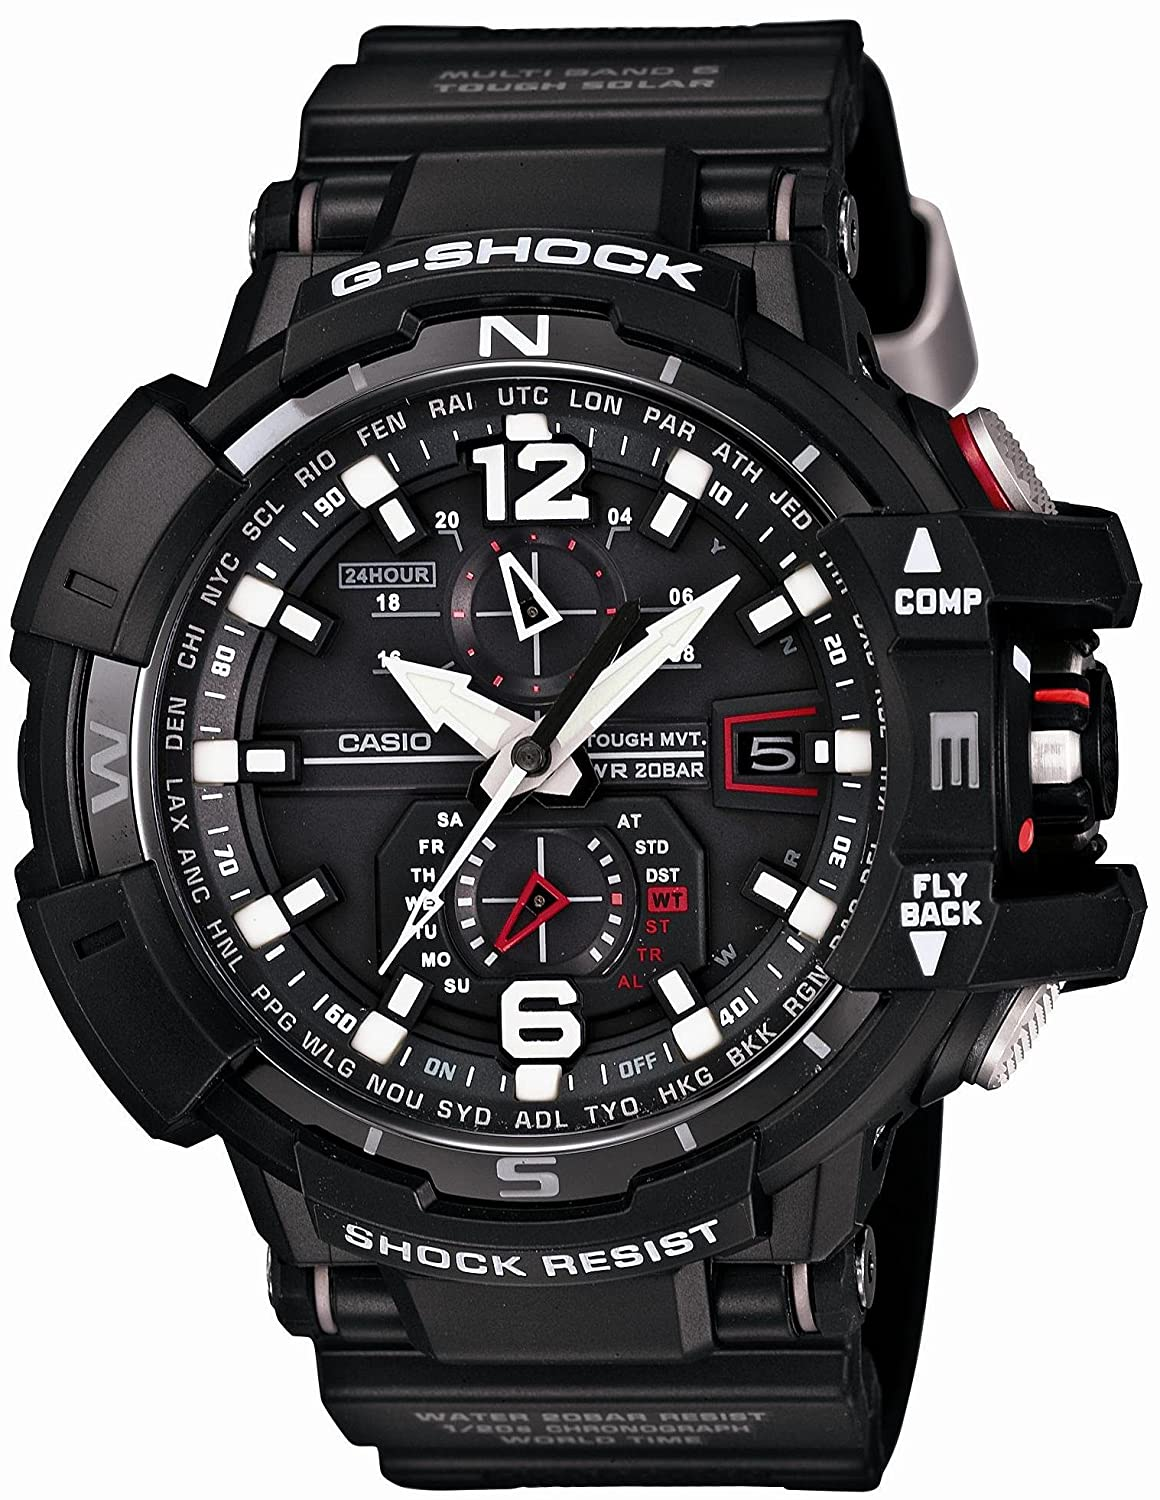 BEST SPORT WATCHES FOR MEN UNDER $500